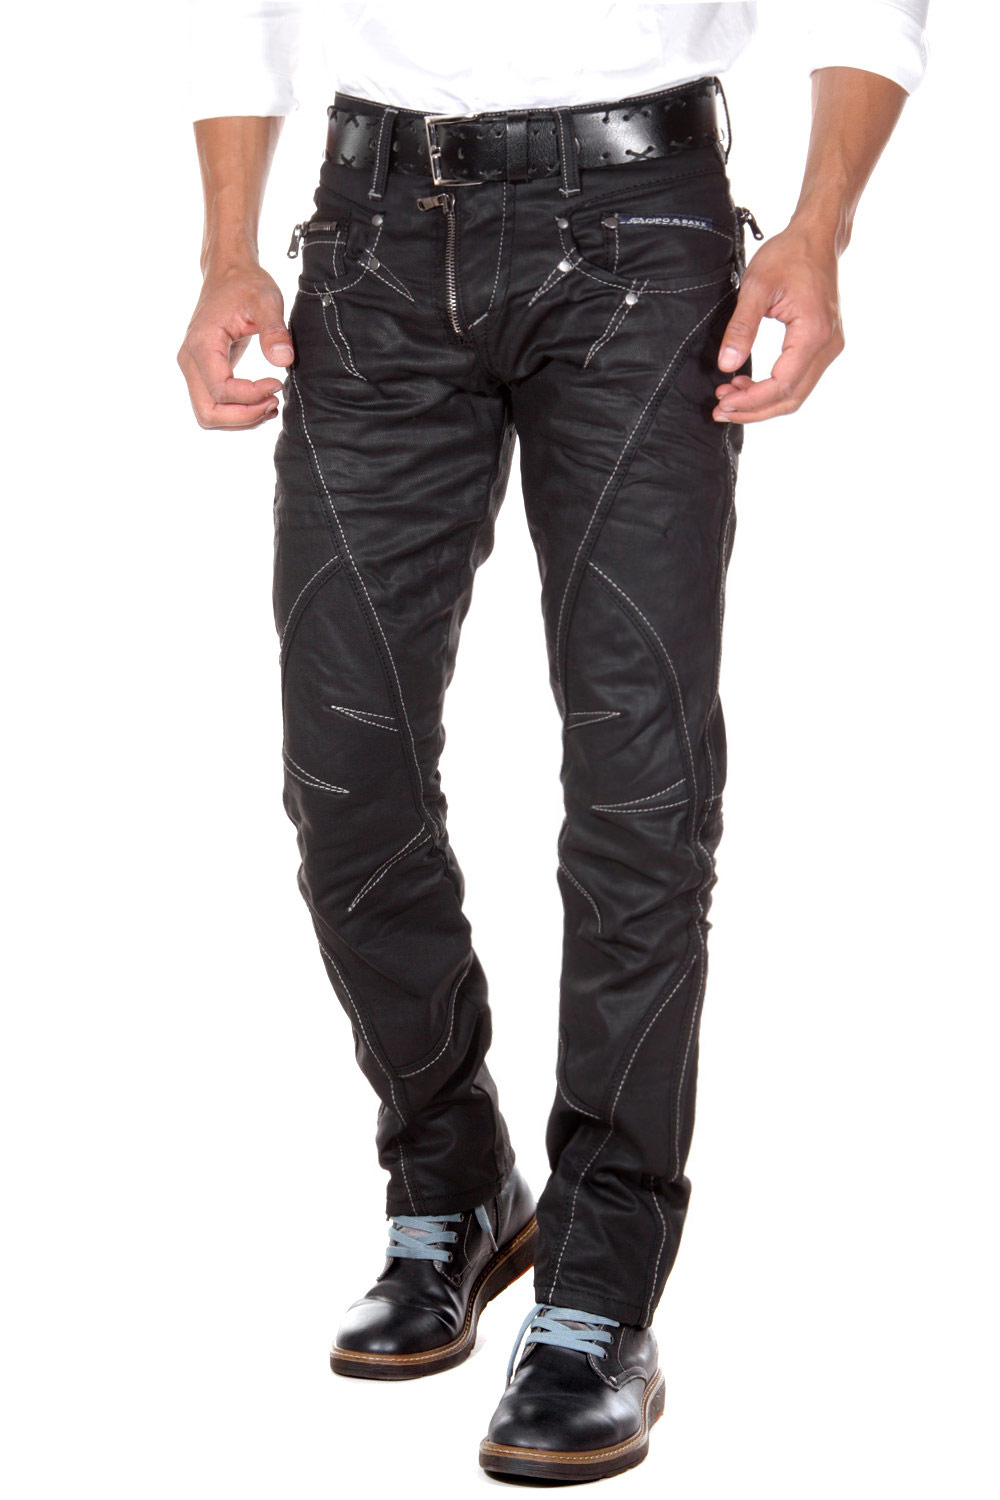 CIPO&BAXX Fashionjeans regular fit auf oboy.de